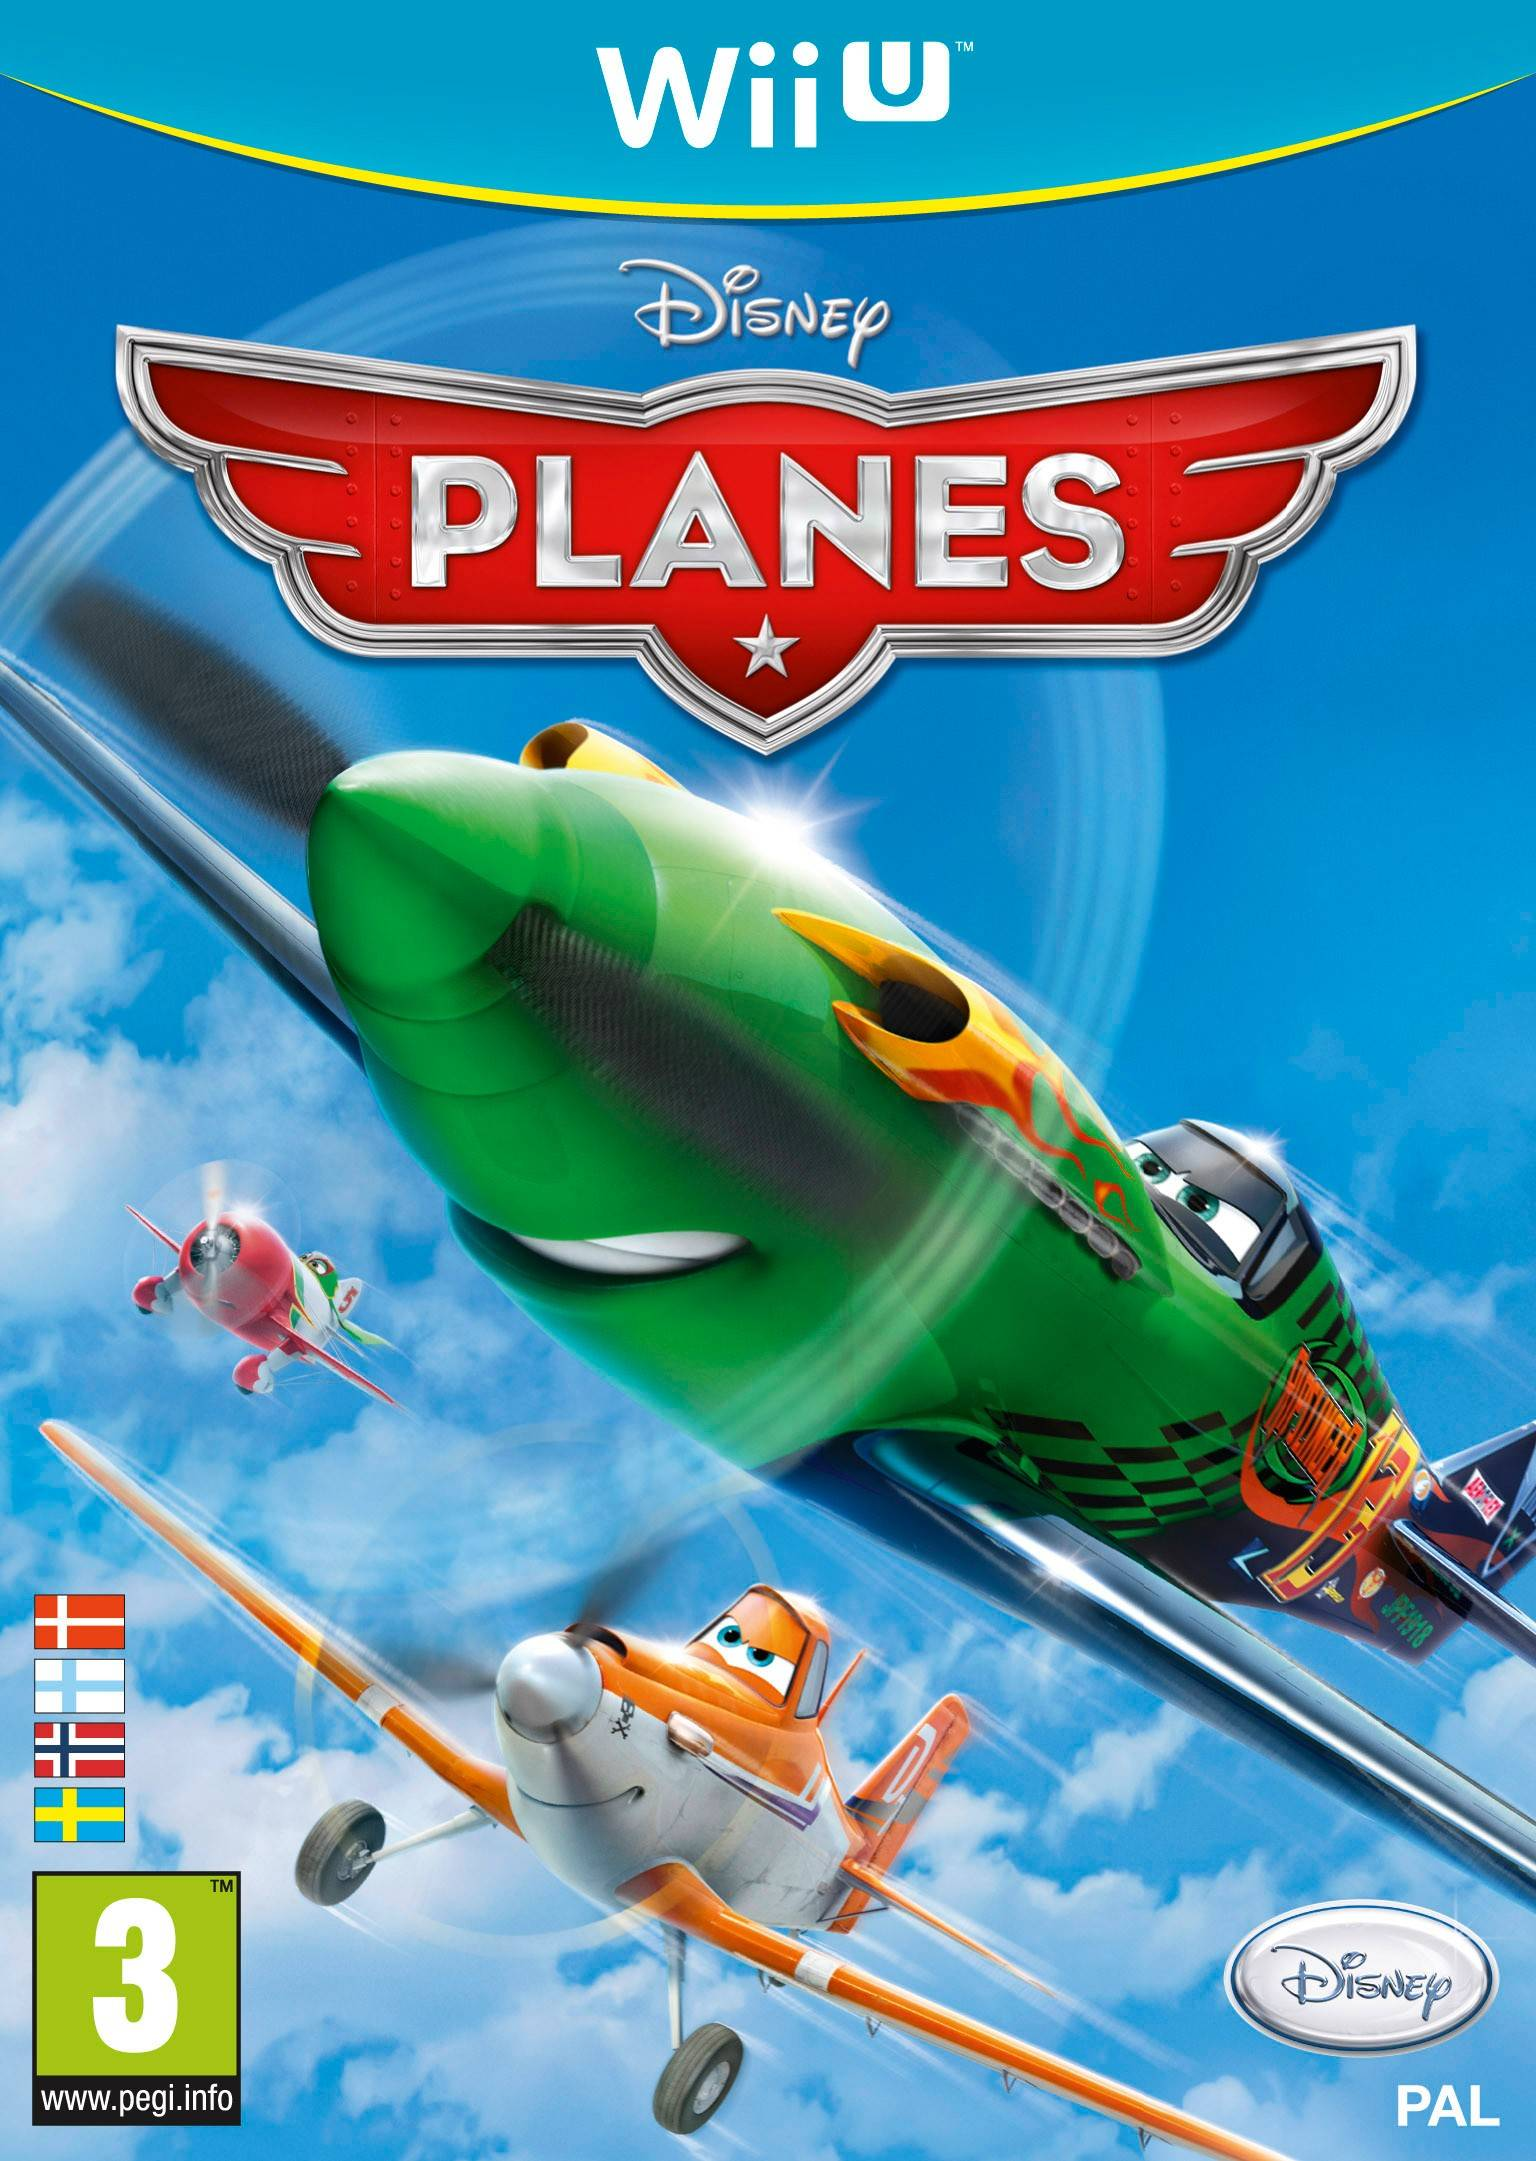 Disneys Planes: The Videogame (Wii U)